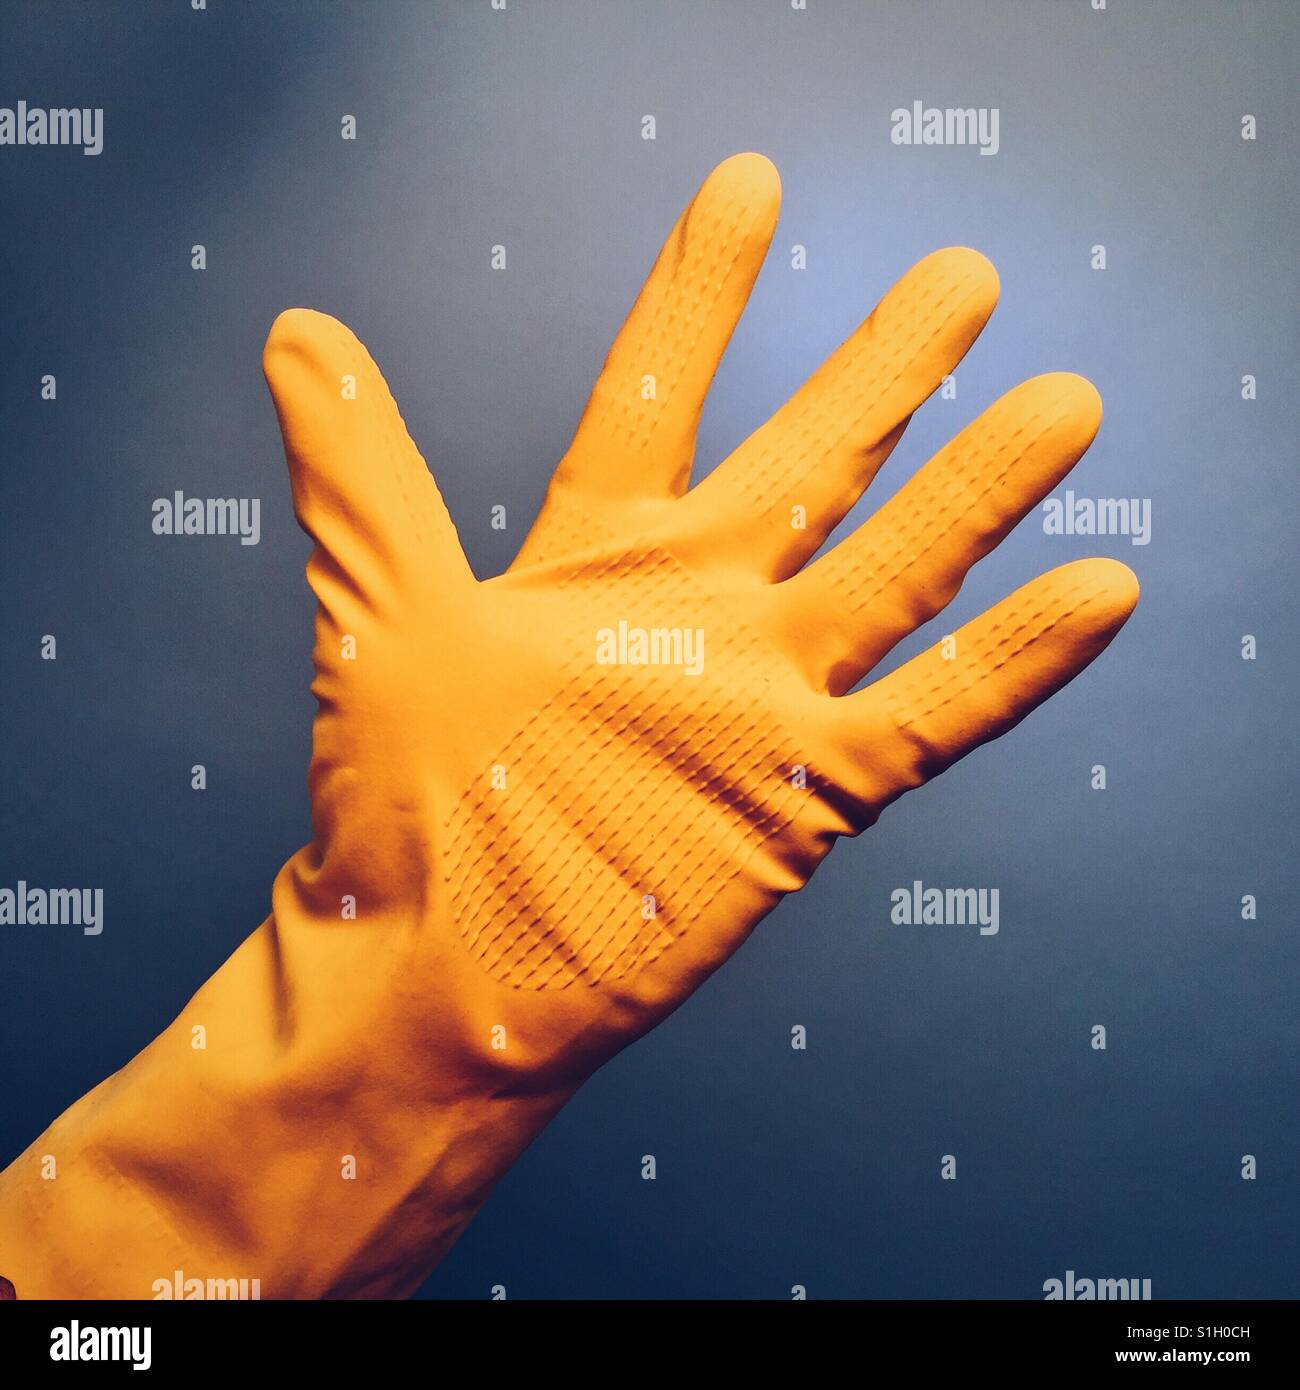 A man's hand in a yellow rubber glove against a blue background - Stock Image